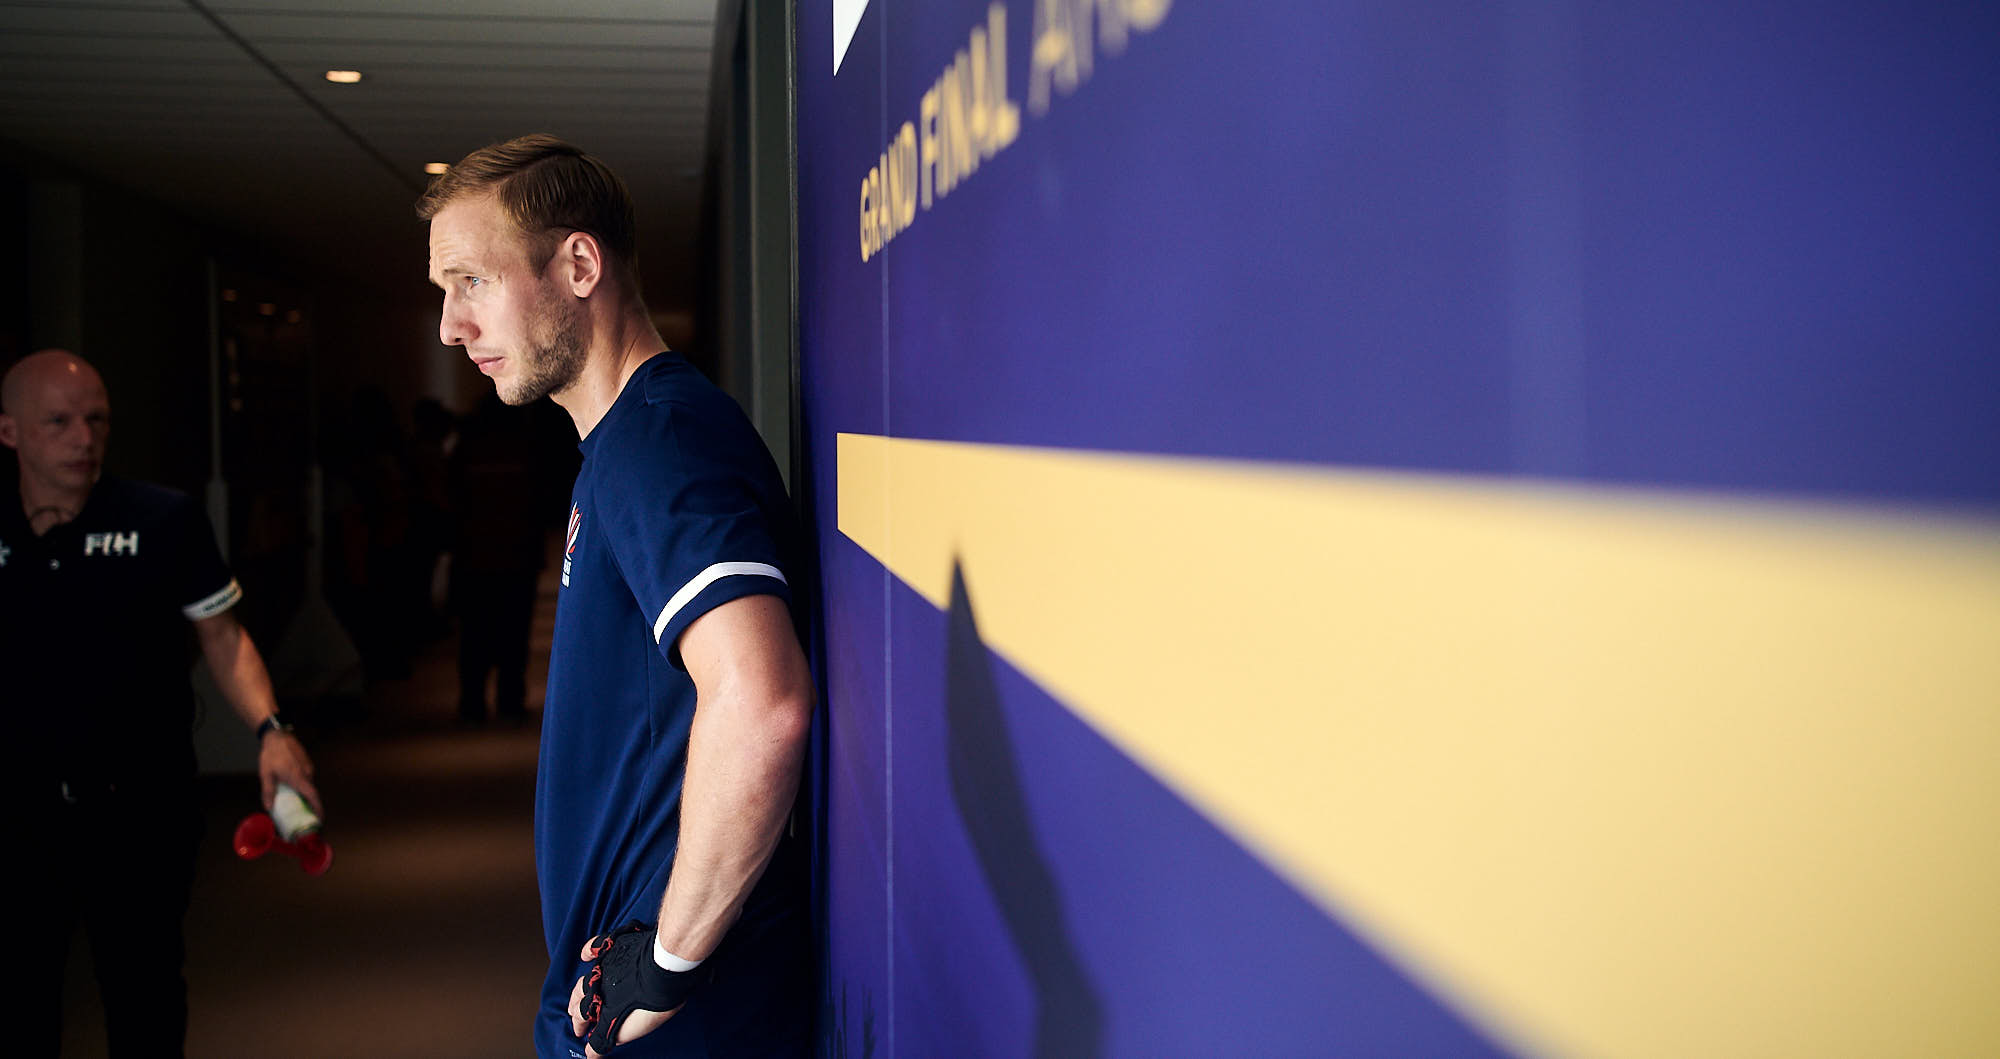 English hockey player taking a moment of focus behind the scenes at FIH Pro League